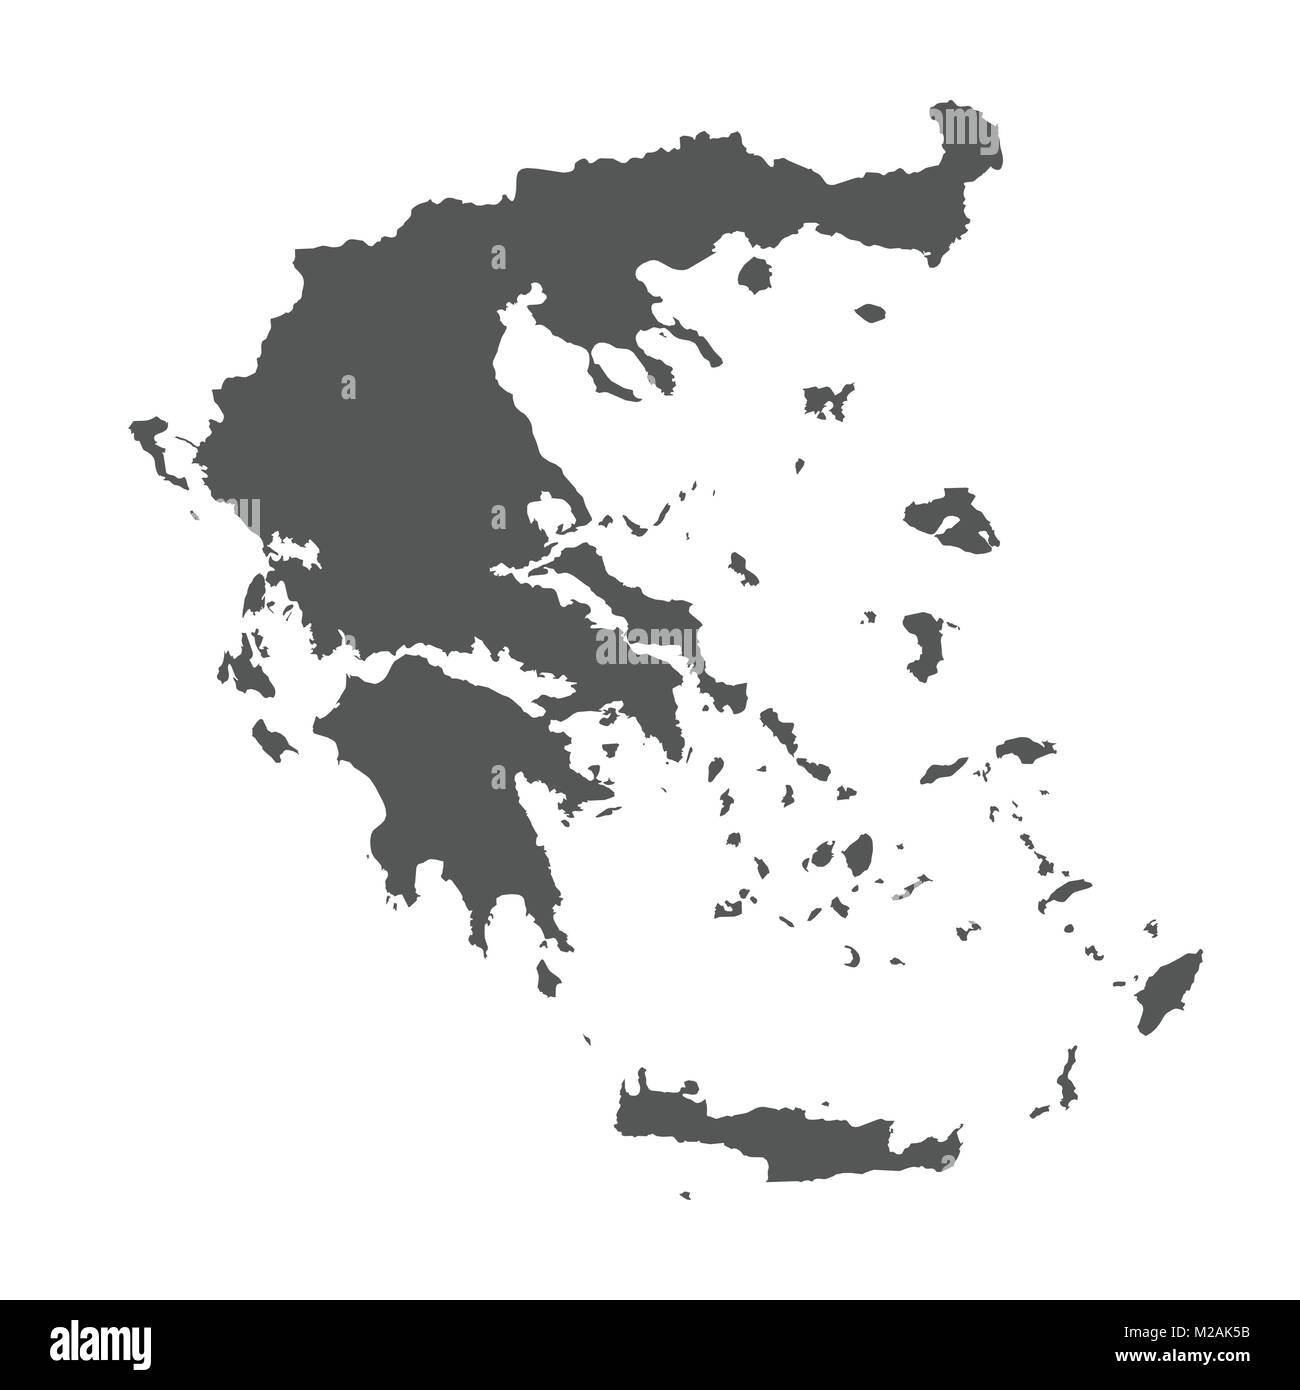 Greece vector map. Black icon on white background Stock Vector Art ...